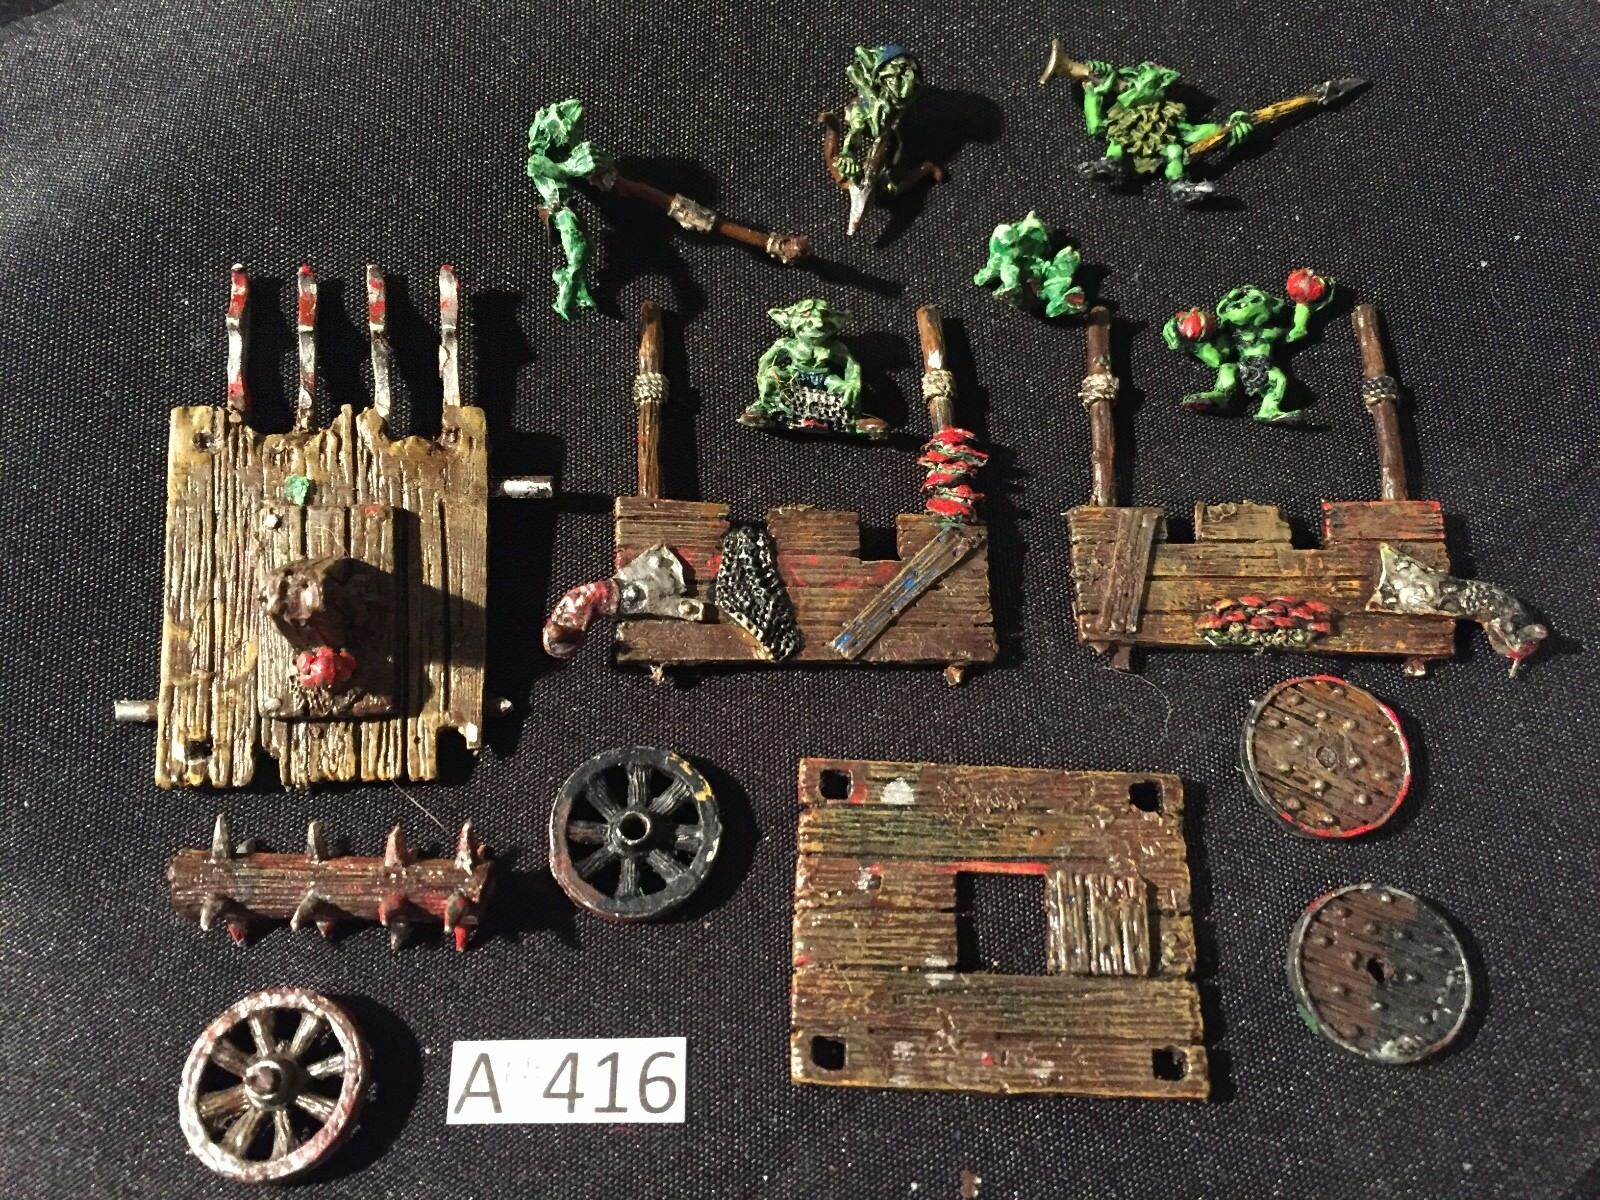 Games workshop warhammer snotling pumpe wagen metall orks und goblins fantasie